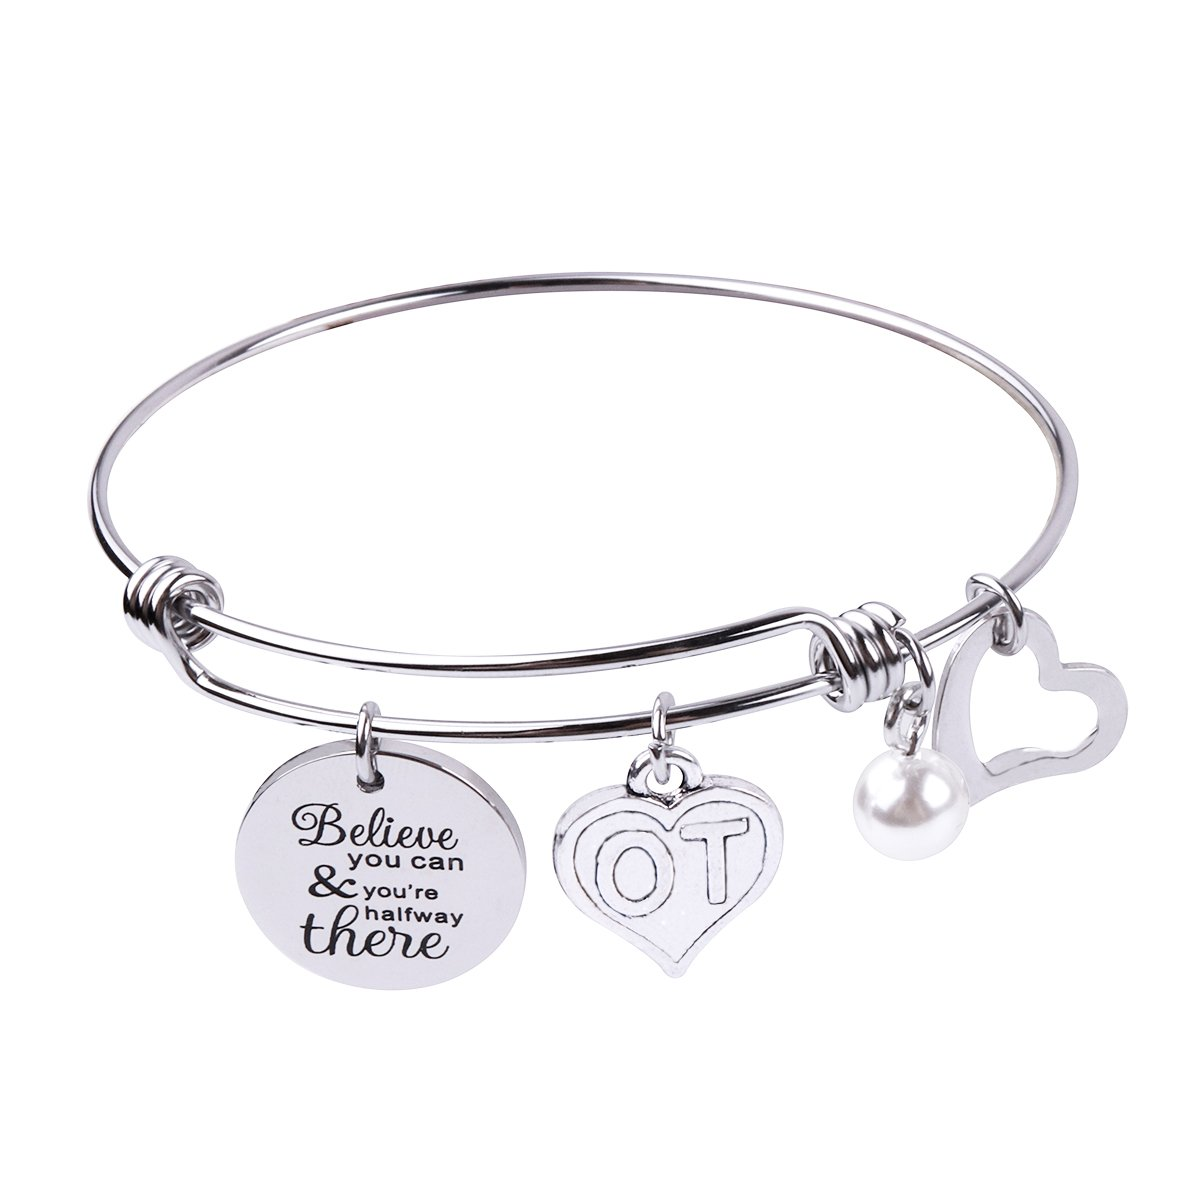 RUNXINTD Occupational Therapist Gifts Inspirational Jewelry Therapy Bracelet Believe you can and you're halfway there Graduation Gift OT Gift (OT Silver Bracelet)